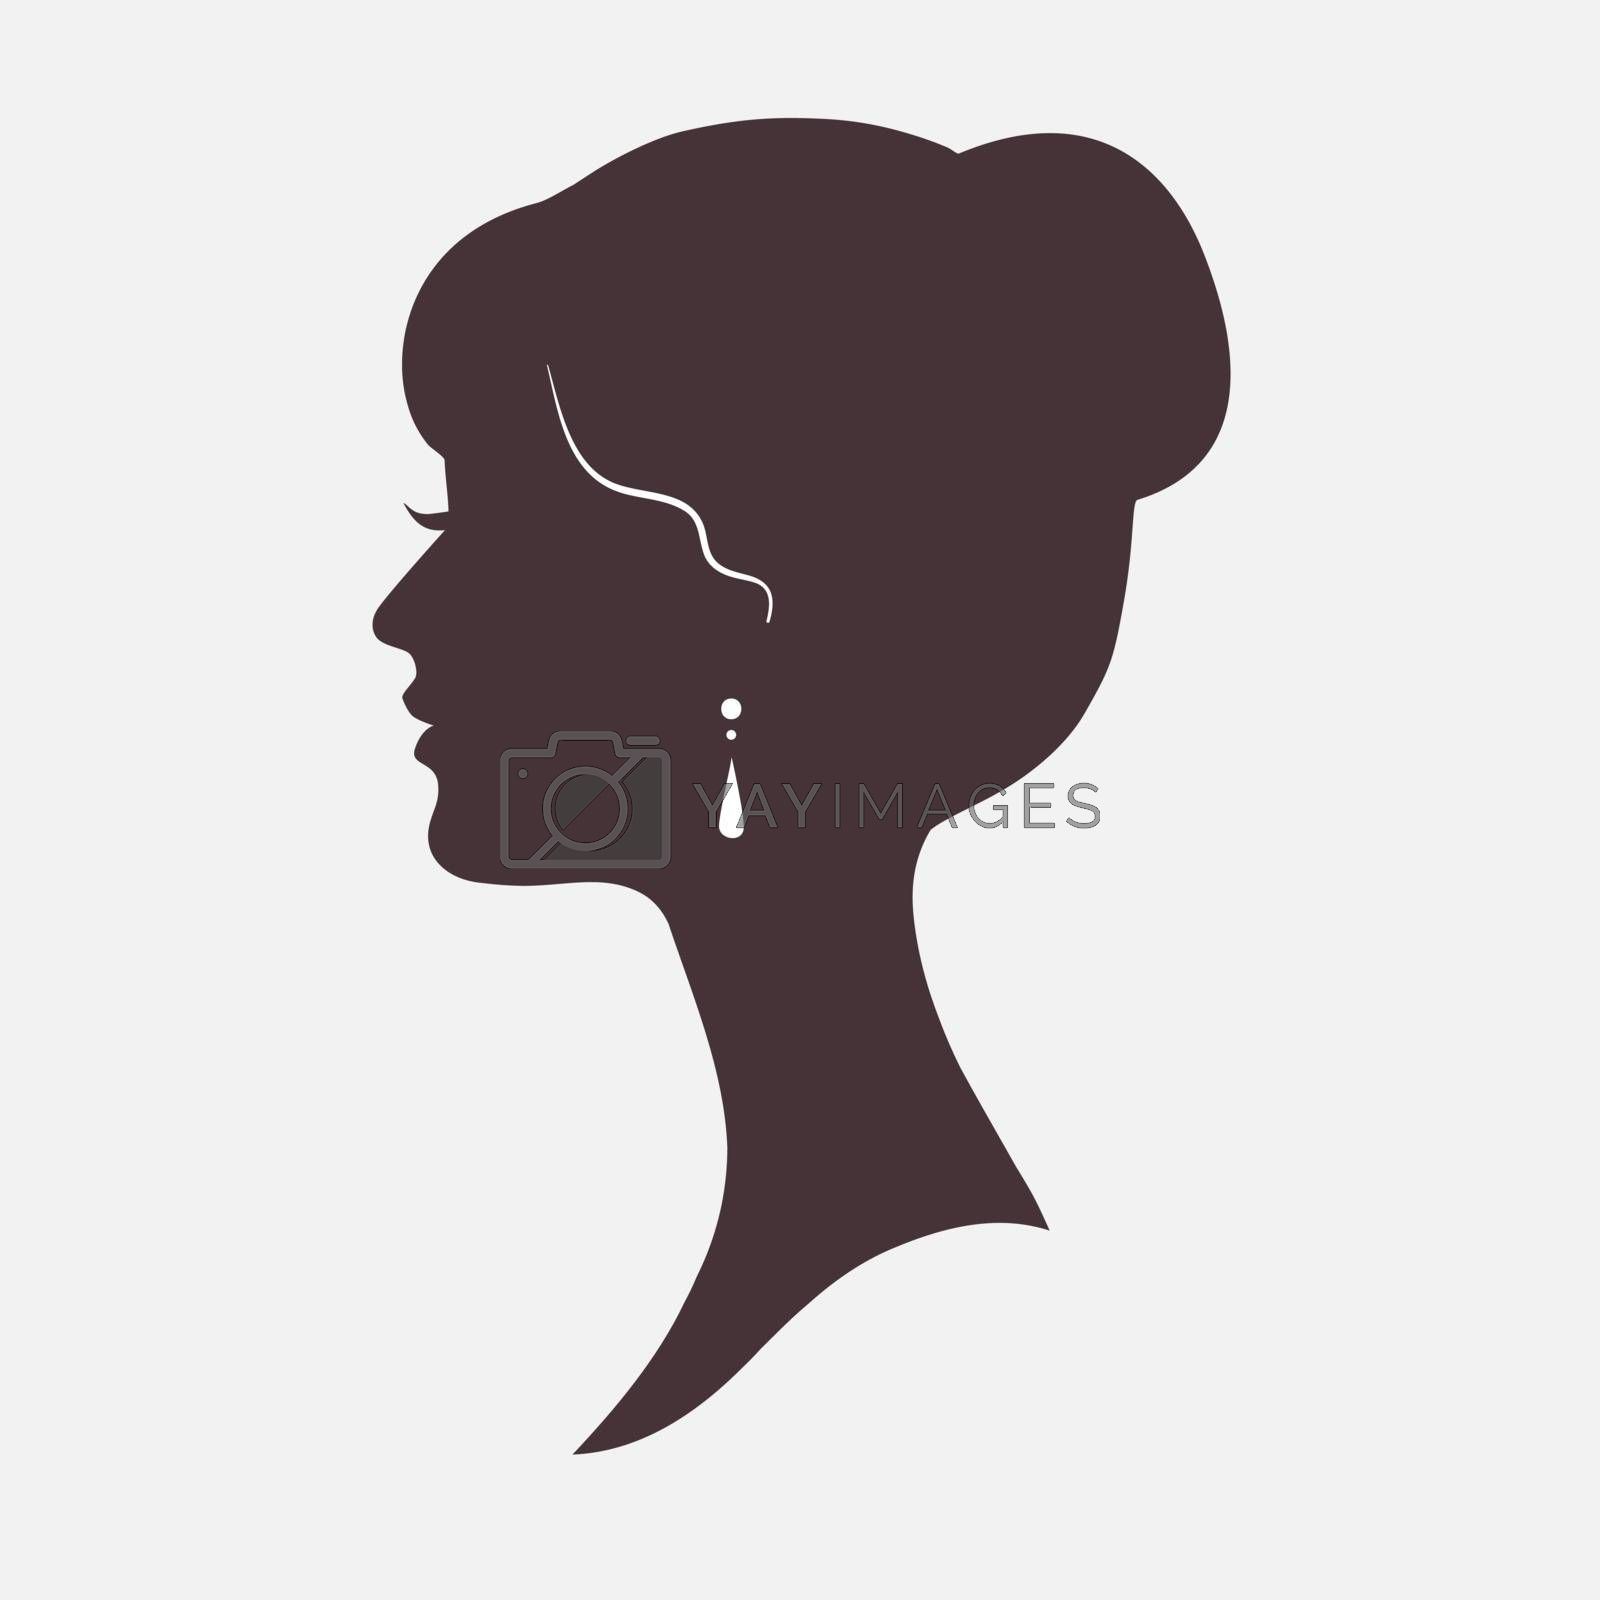 Woman Face Silhouette with Stylish Hairstyle icon